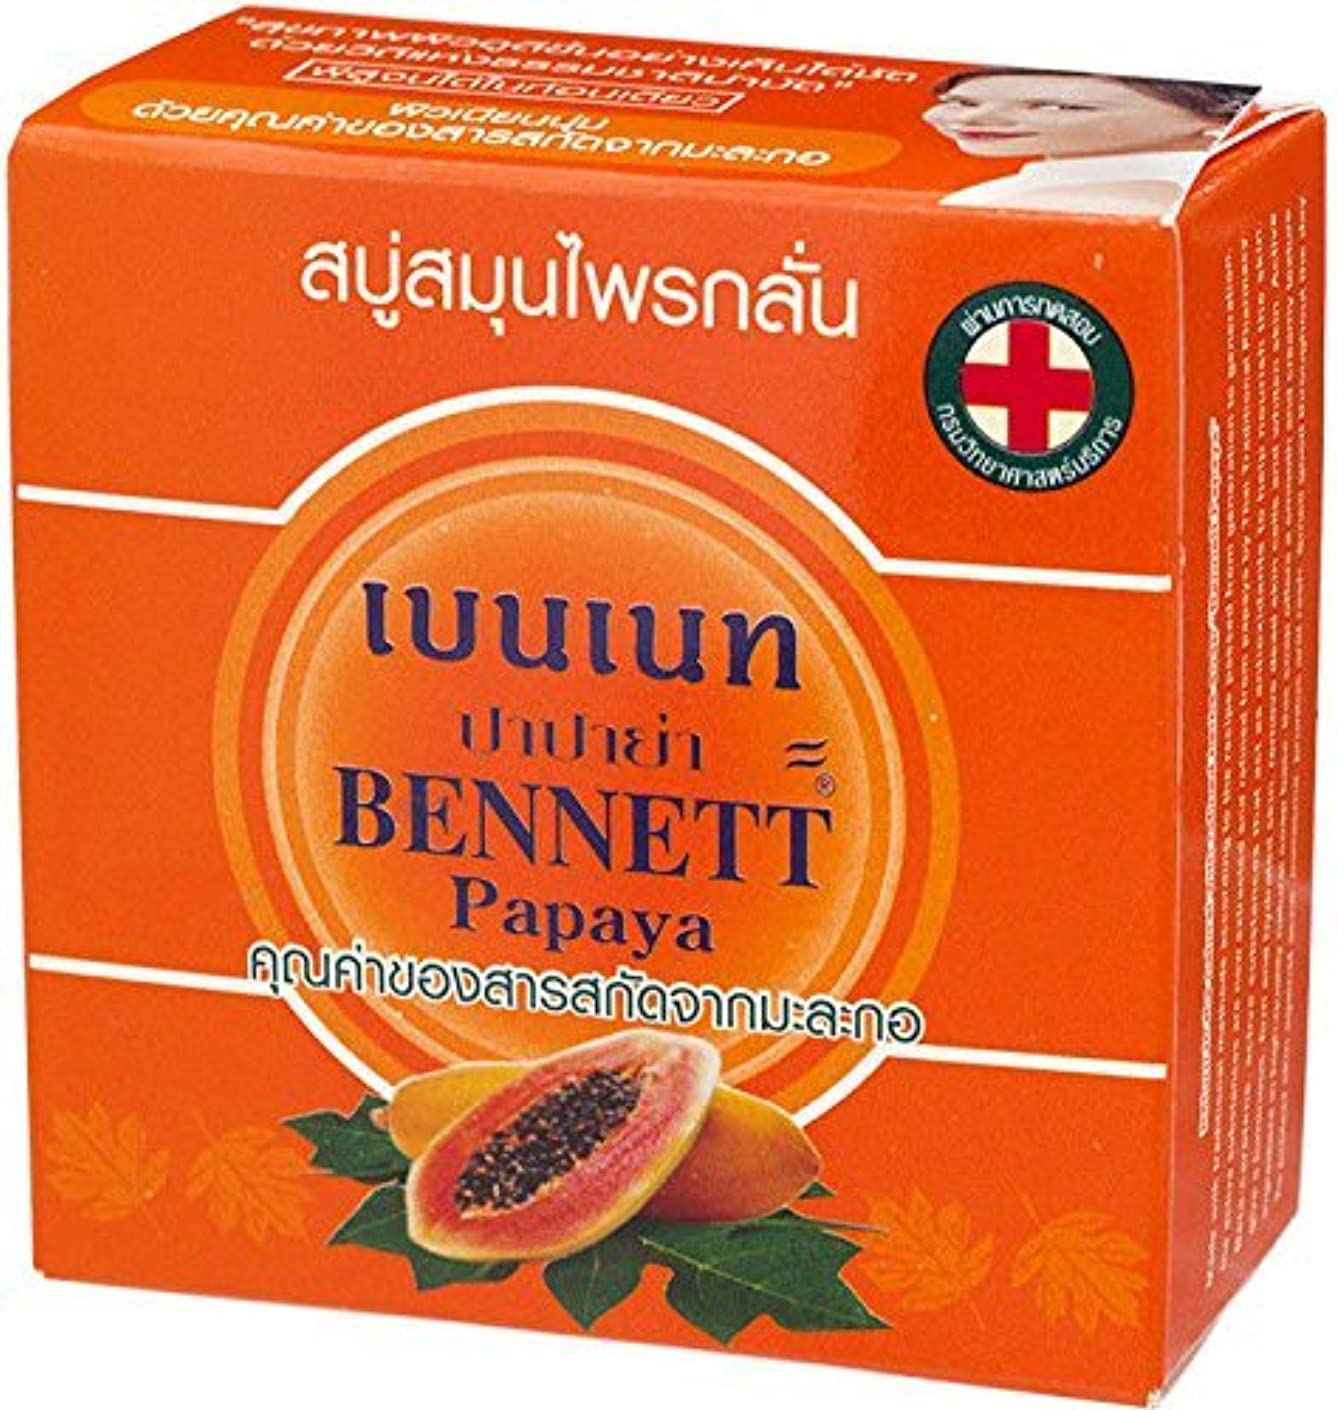 解明する符号抑圧するPARROT HERBAL NATURAL EXTRACT THAI PAPAYA PLUS ALOE VERA AND HONEY SOAP BAR 75G [並行輸入品]